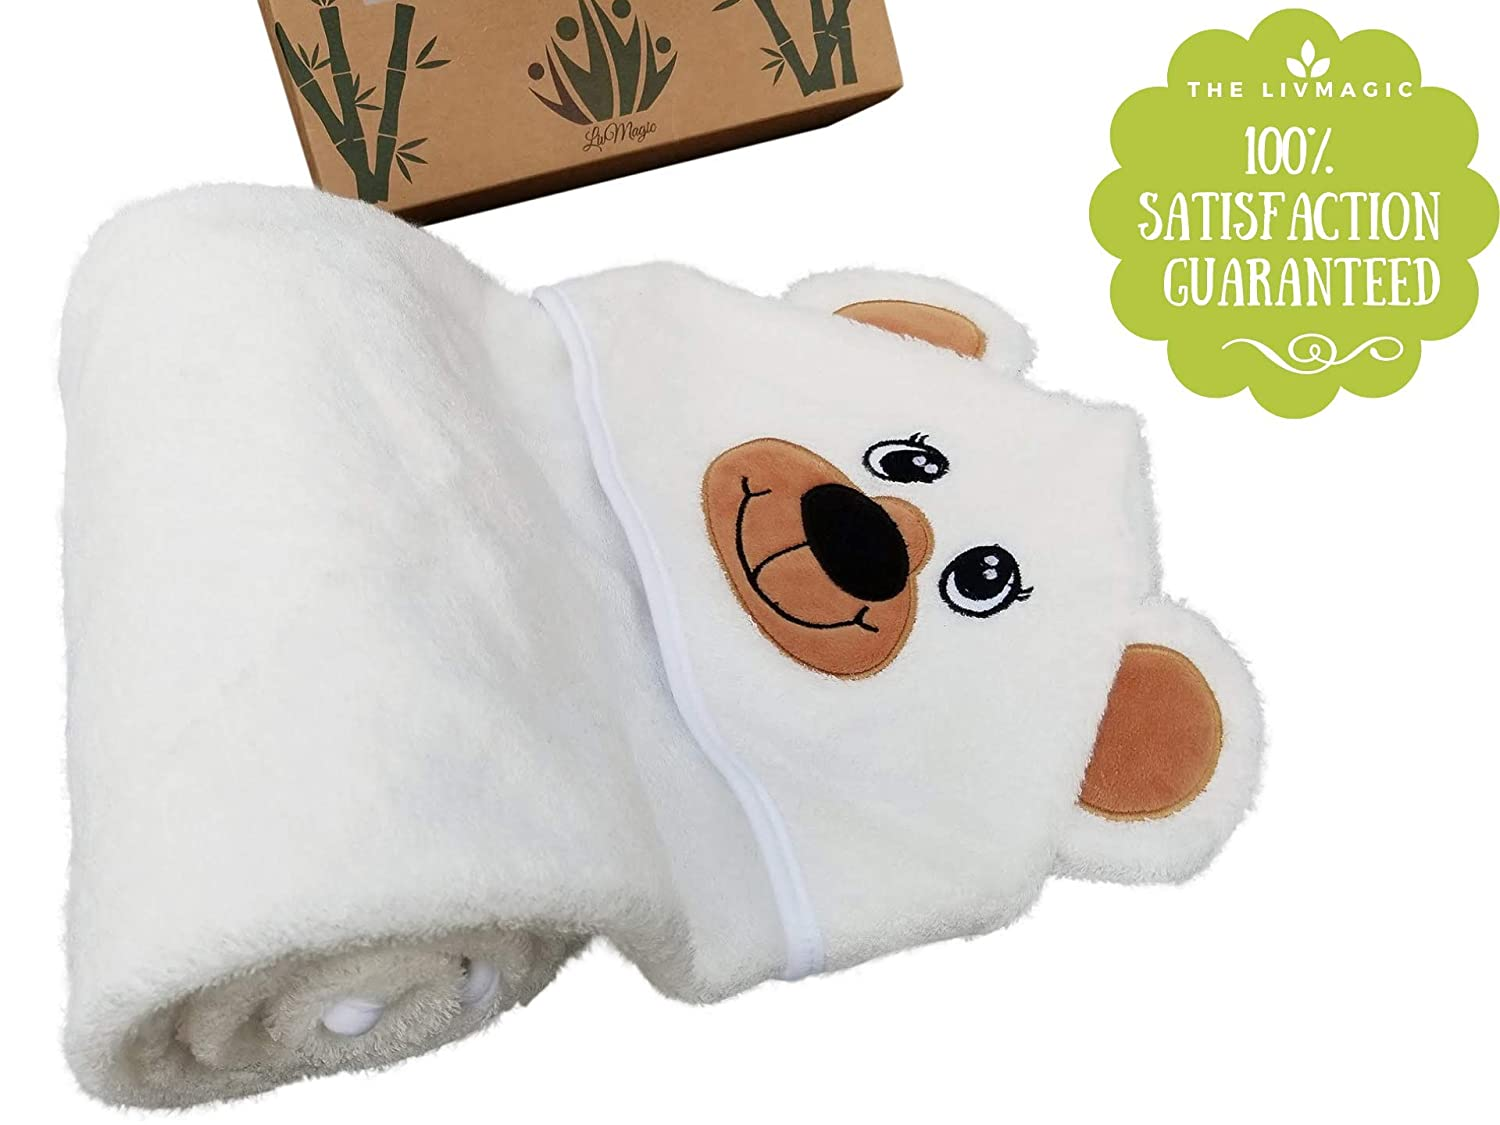 with Unique Bear Face Design A Perfect Gift for Infants and Toddlers Size 36X36 100/% Organic Bamboo Premium Hooded Baby Towel with Bonus Free eBook